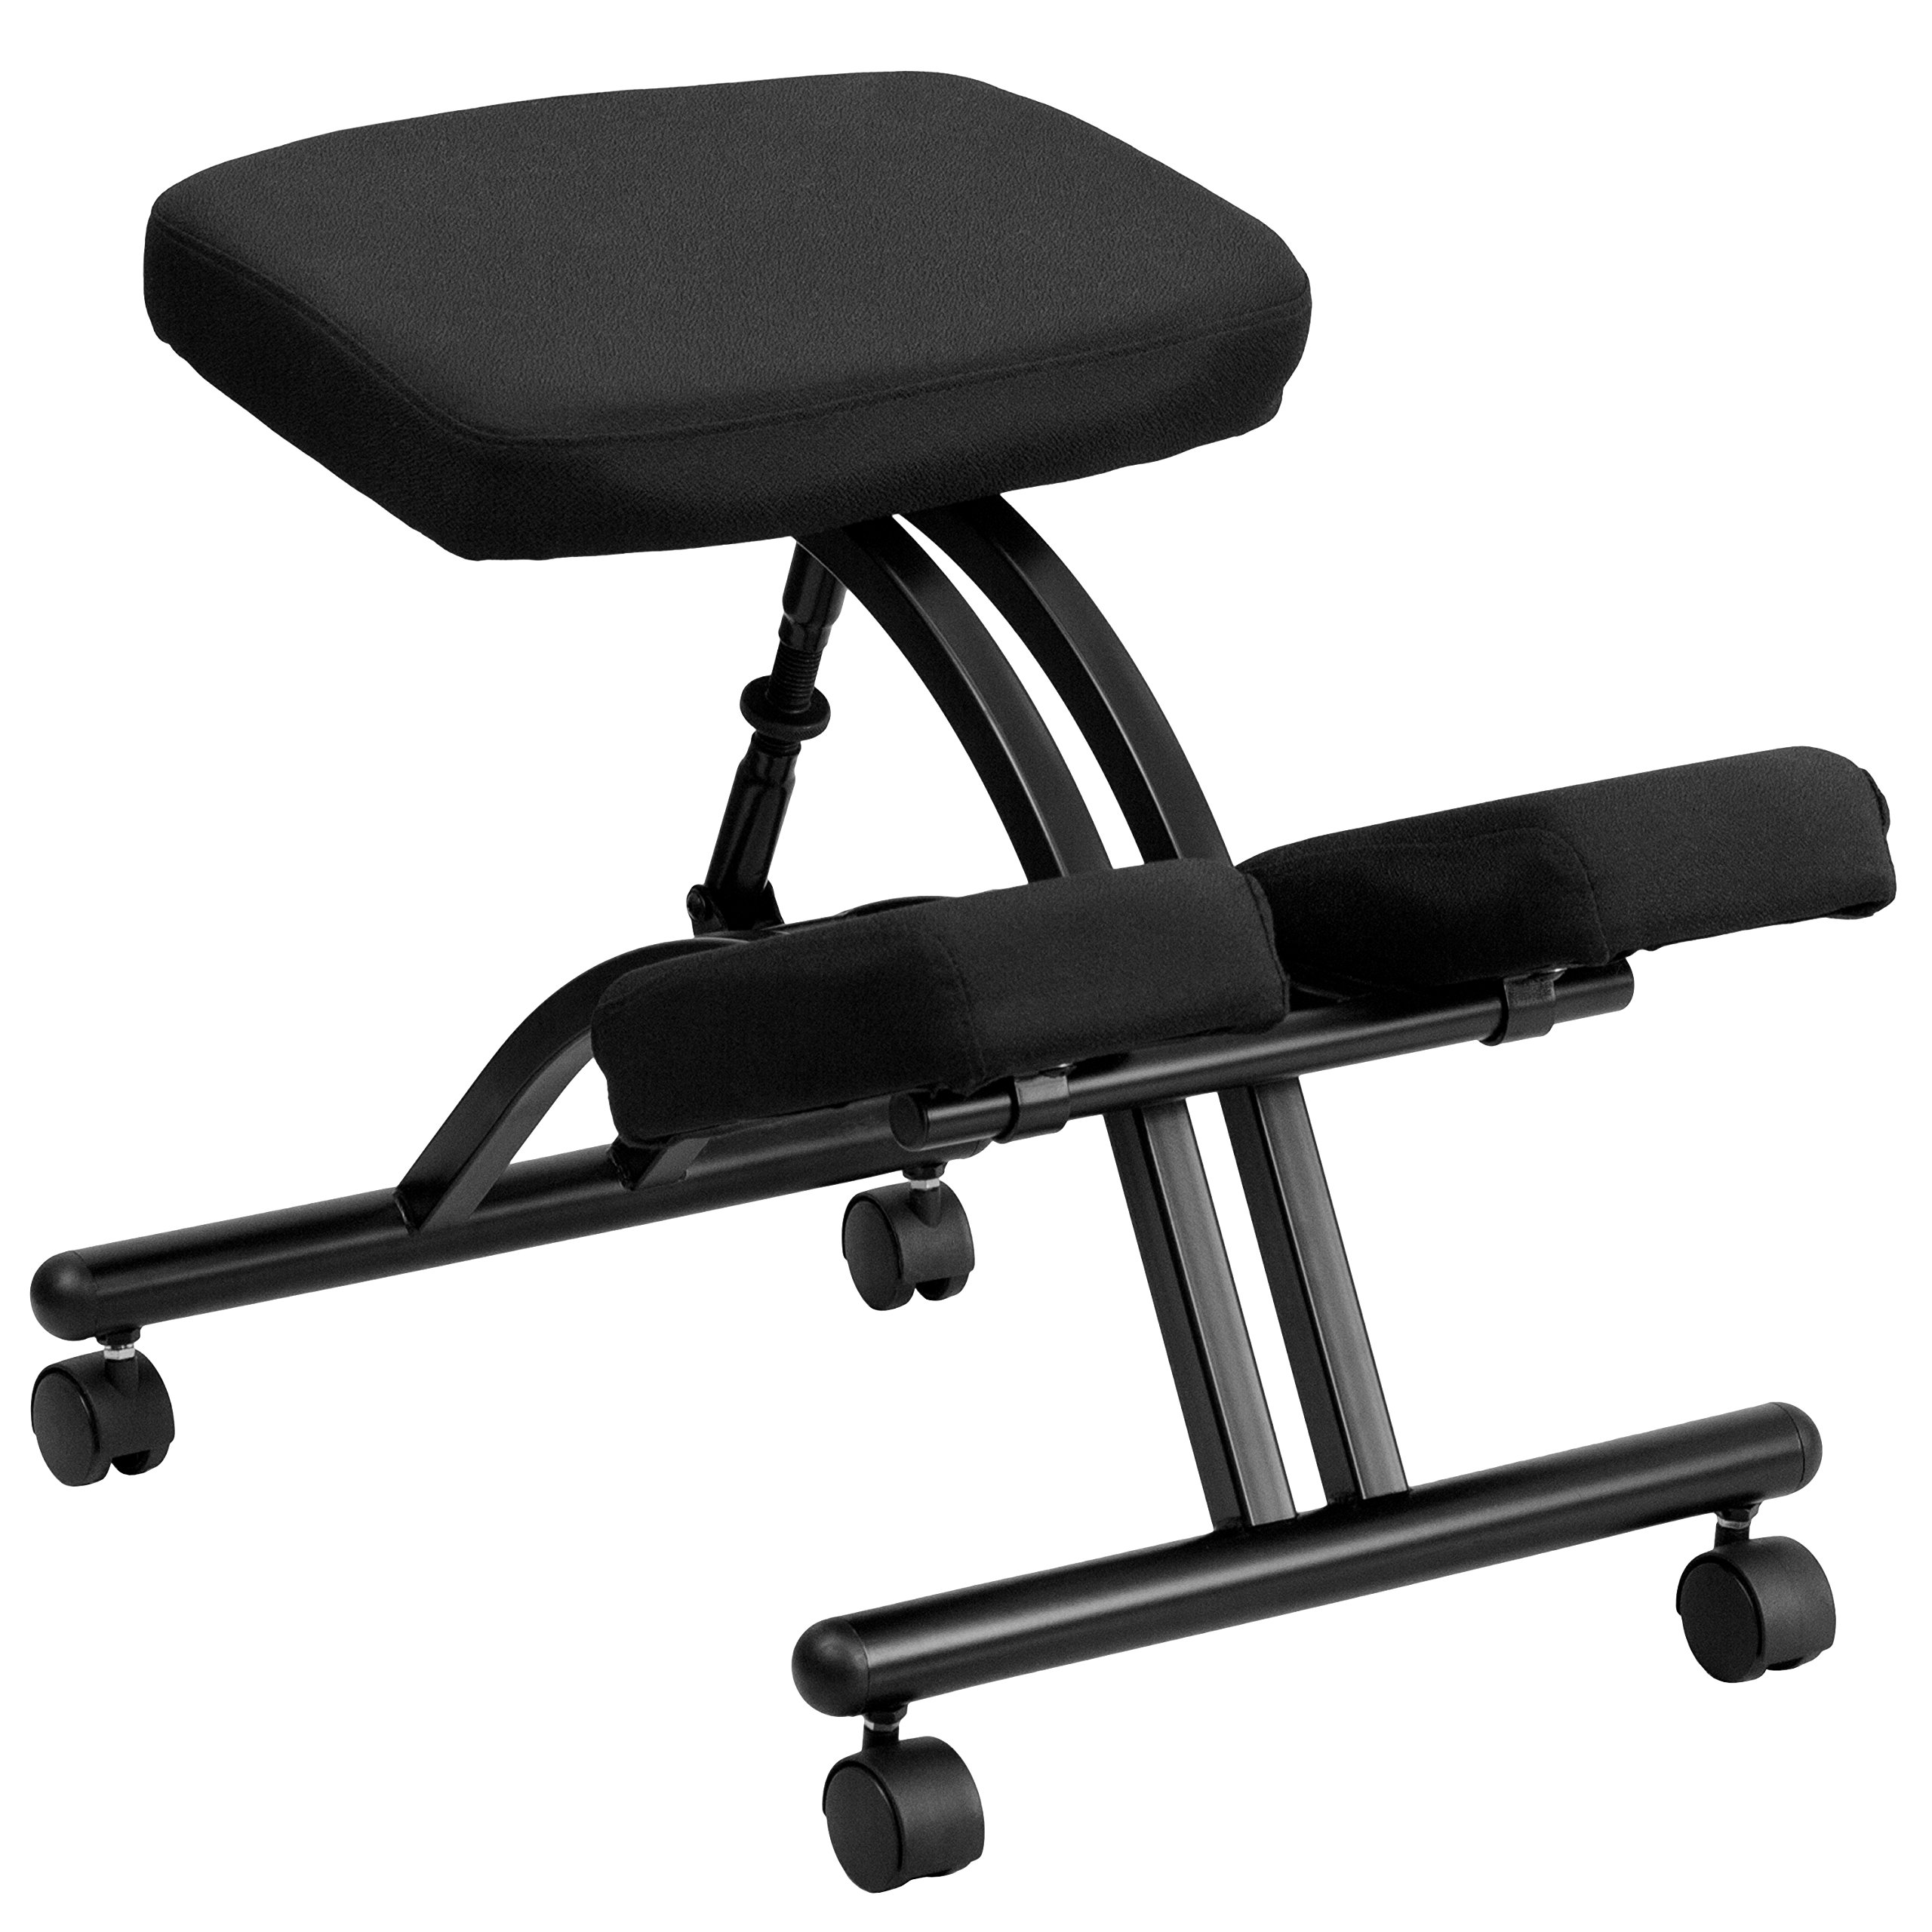 MFO Mobile Ergonomic Kneeling Chair in Black Fabric by My Friendly Office